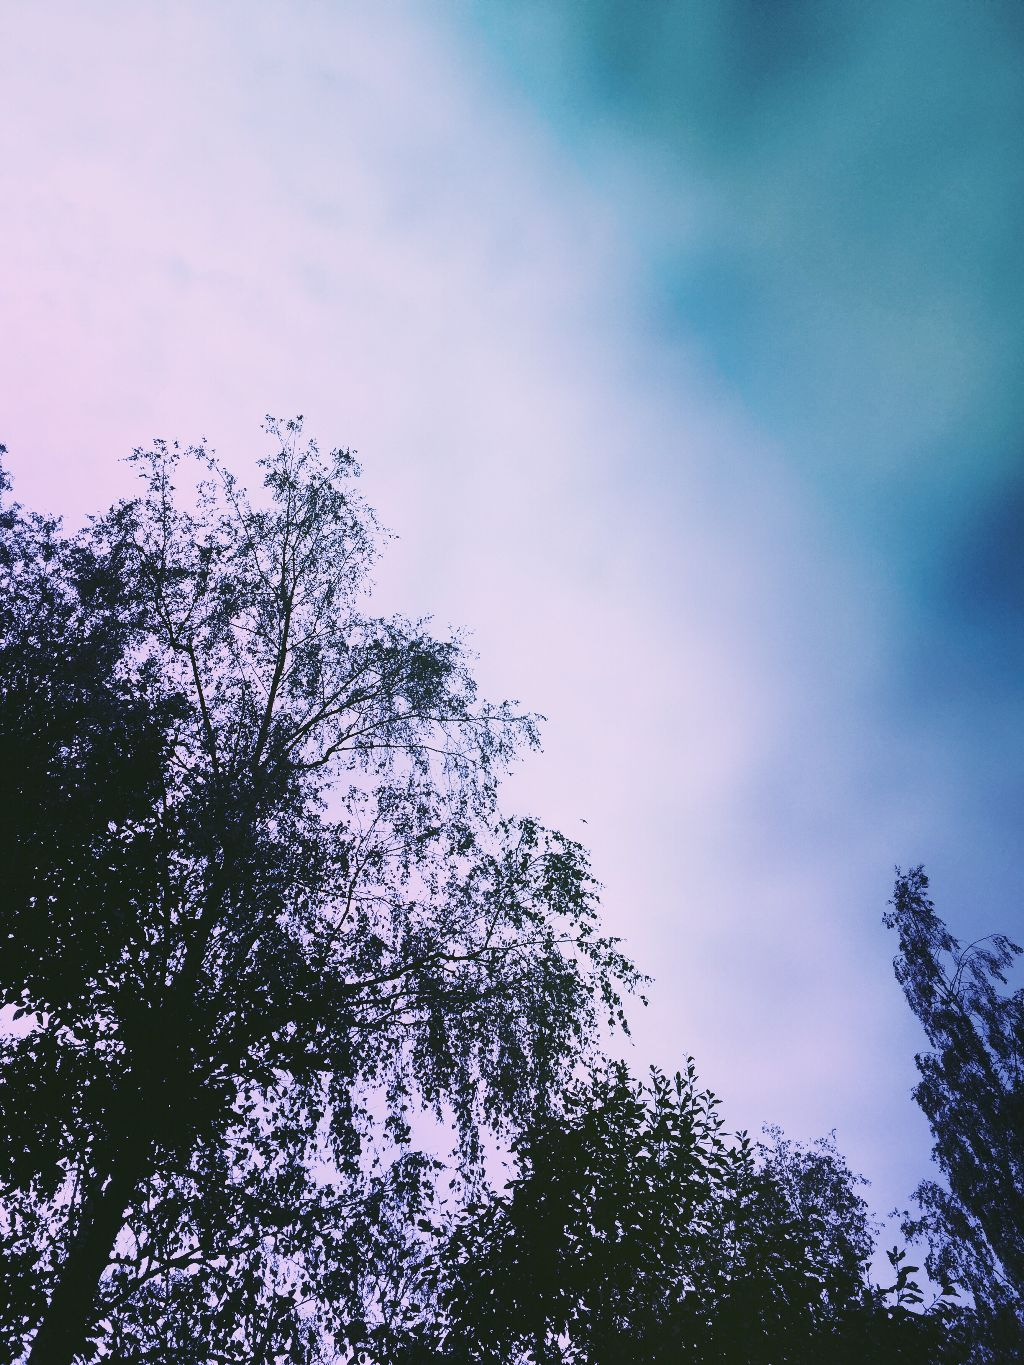 Aesthetic aesthetictumblr nature sky tumblr mypic freetoedit